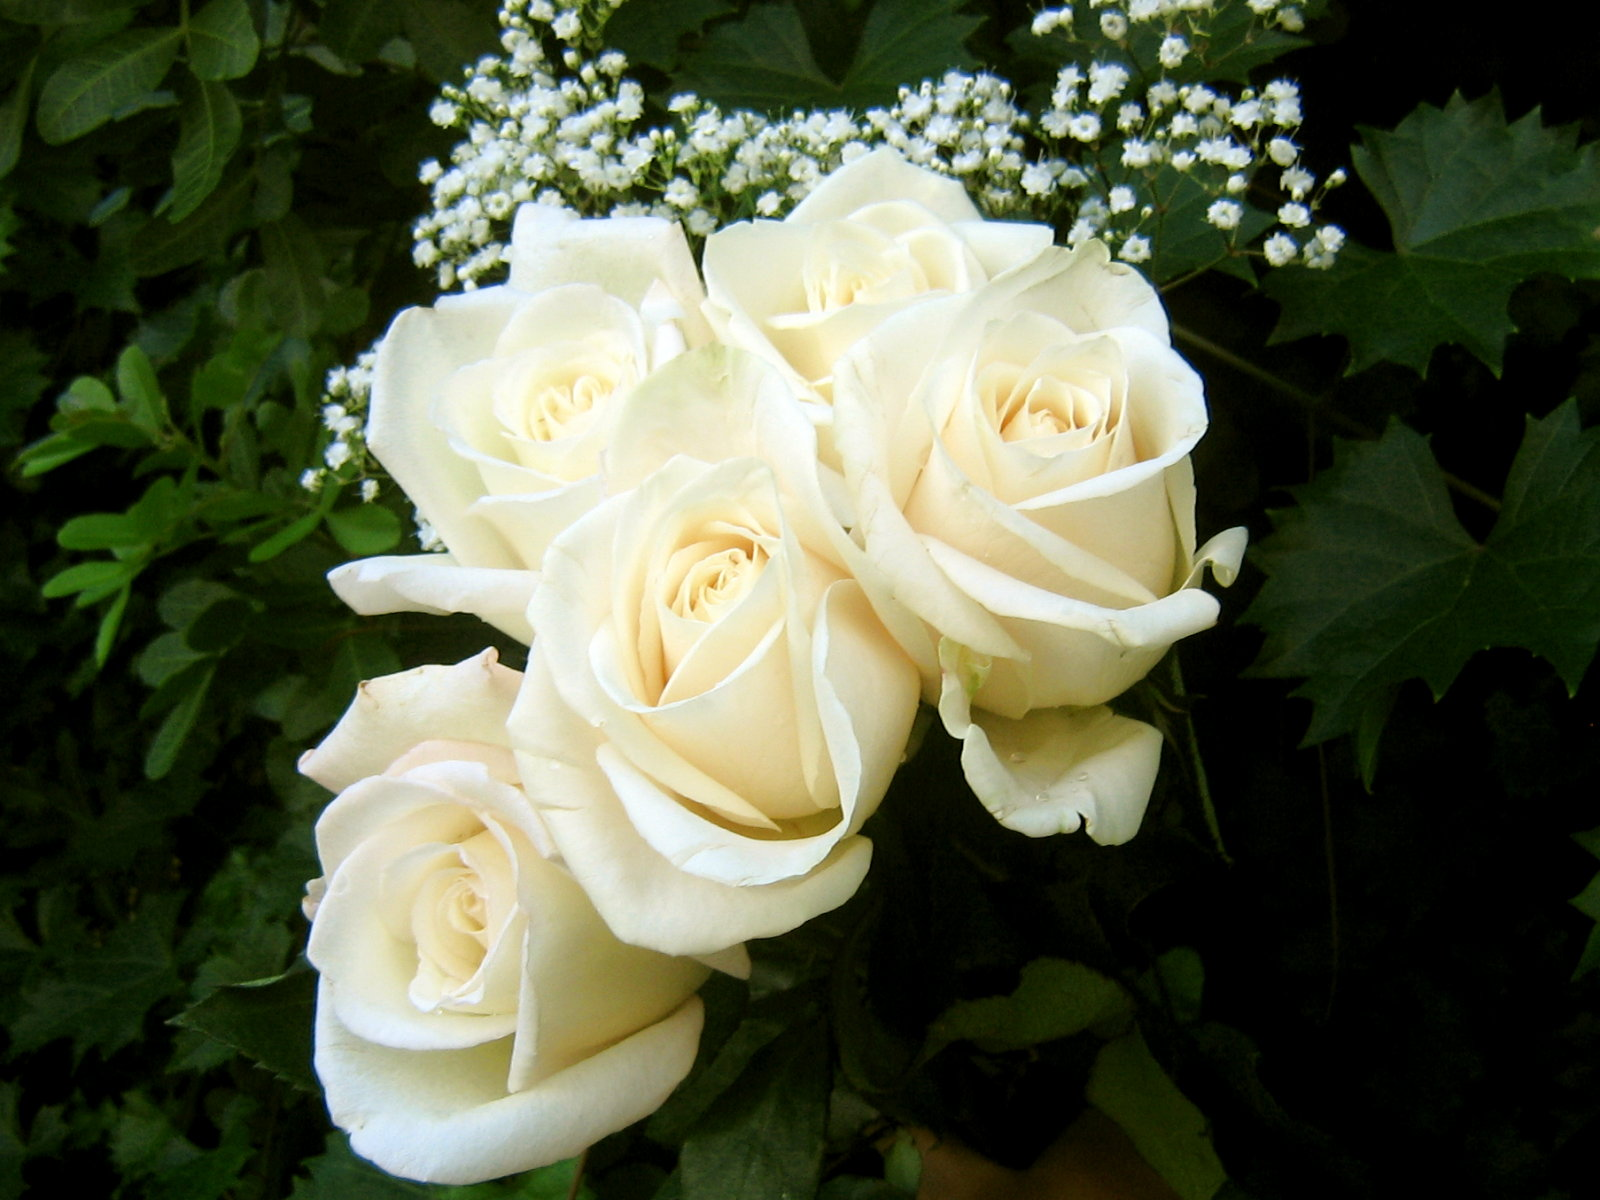 http://www.allabouthappylife.com/wallpapers/roses_bouquets/1600/white-roses-3627.jpg